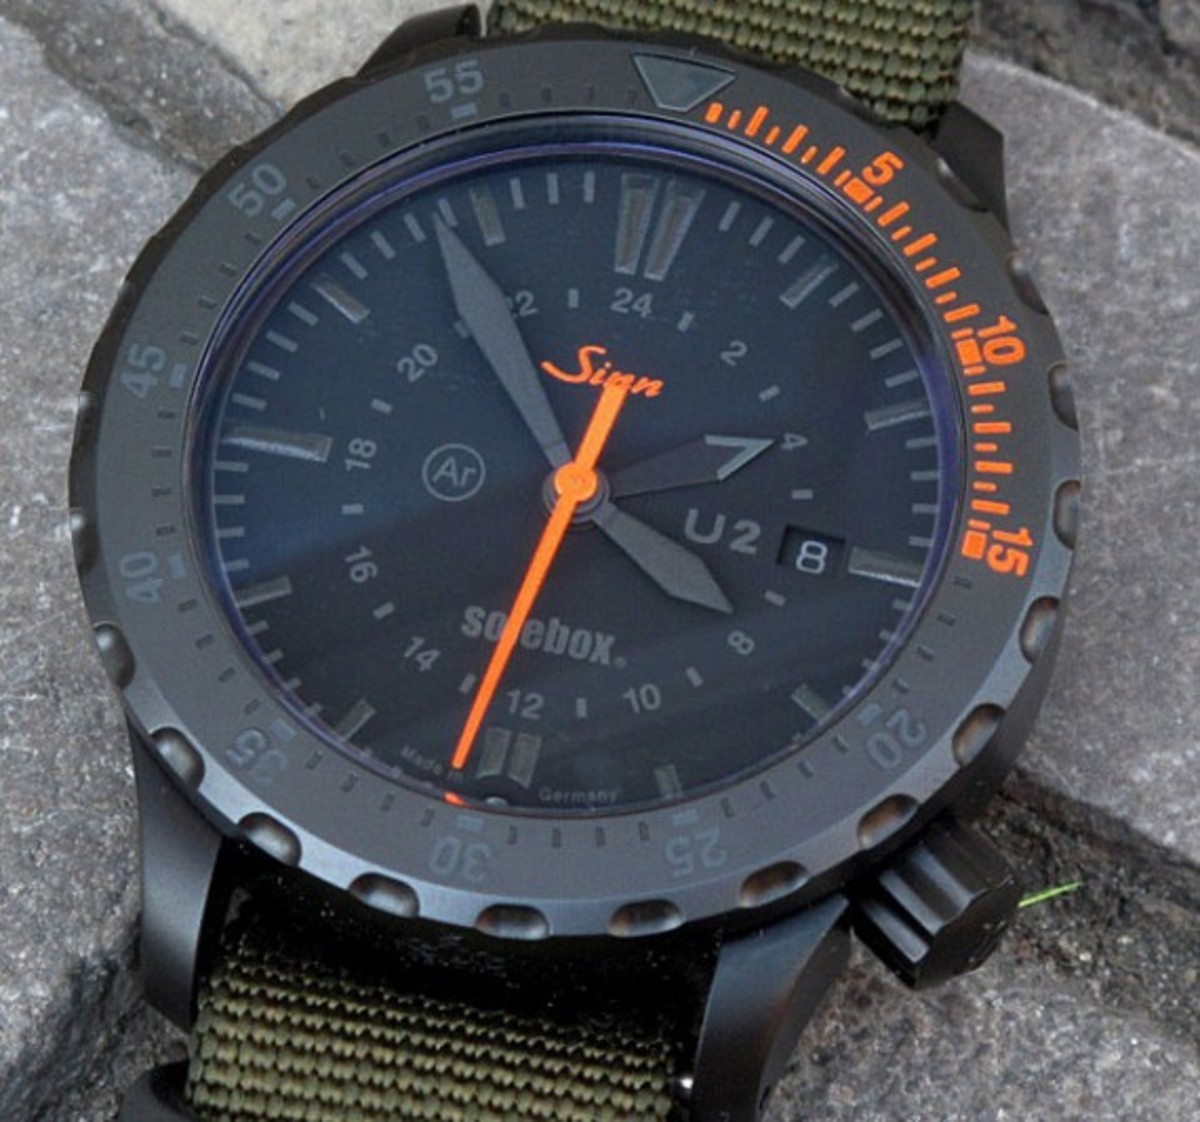 solebox-sinn-u2-diving-watch-03